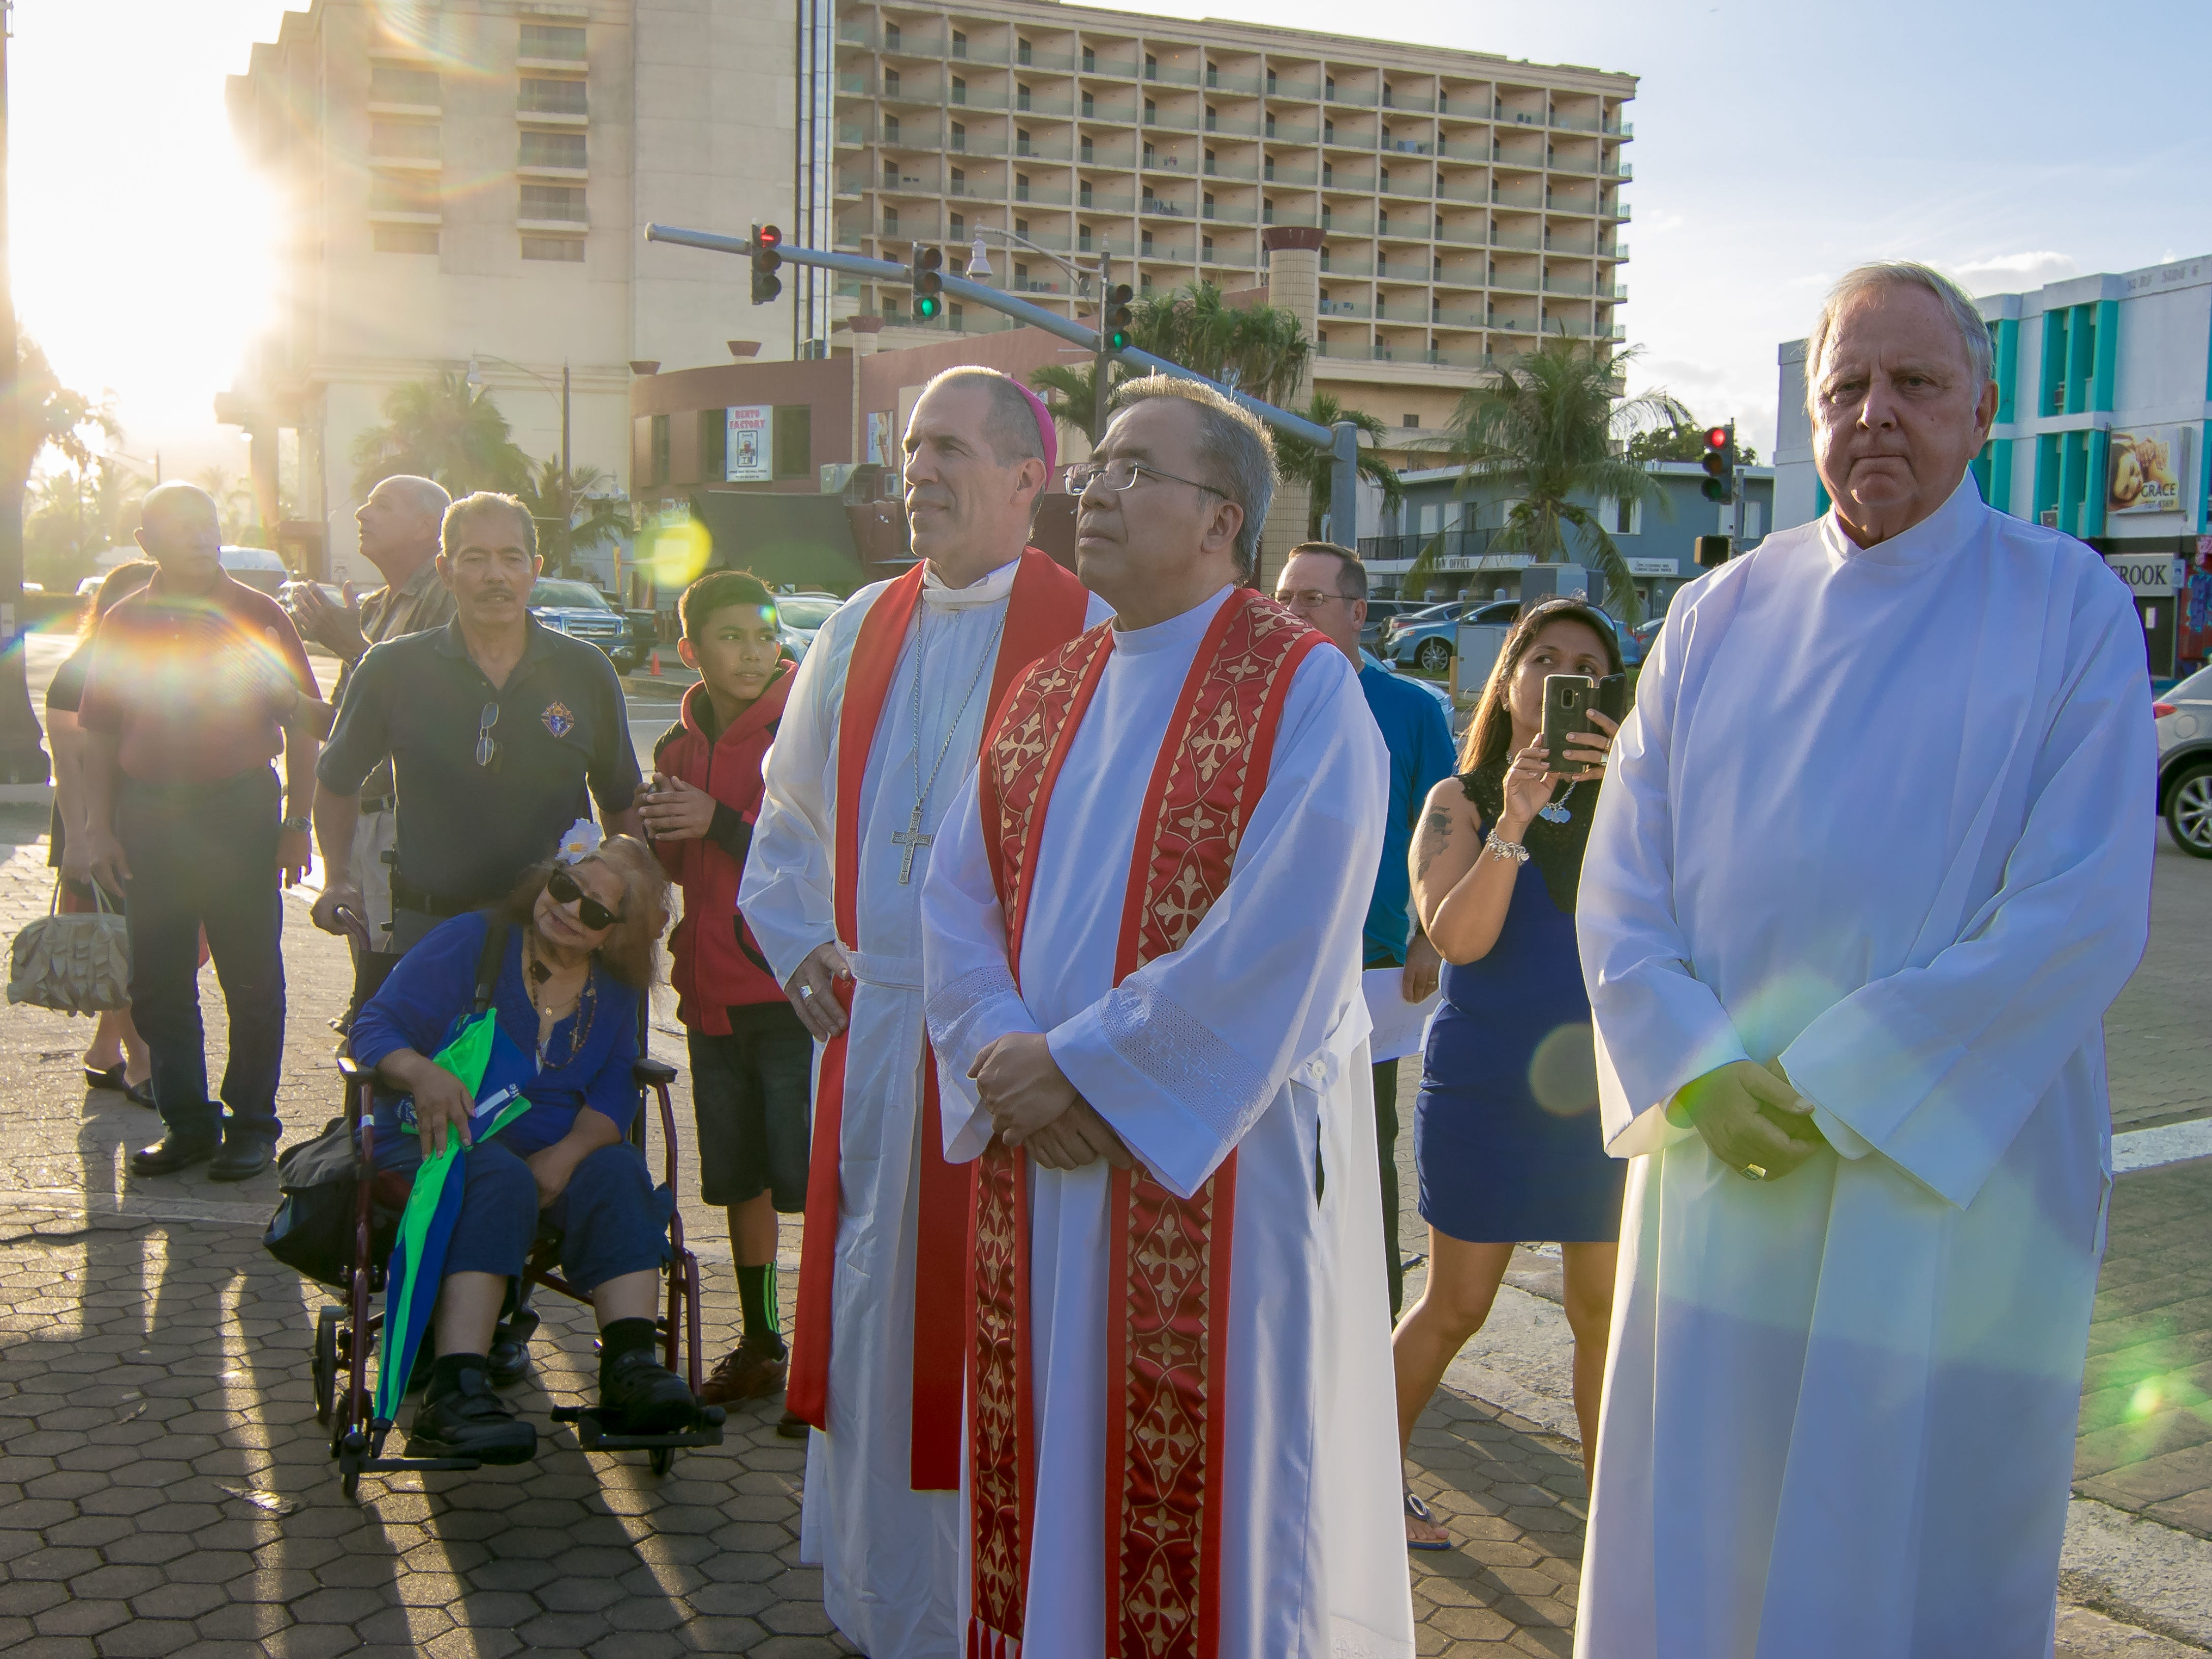 Archbishop Michael Byrnes, Father Jose Antonio Abad, and Deacon William Hagen presided the mass during the Celebration of Feast of Blessed Diego Luis de San Vitores at the parish in Tumon on Jan. 12.